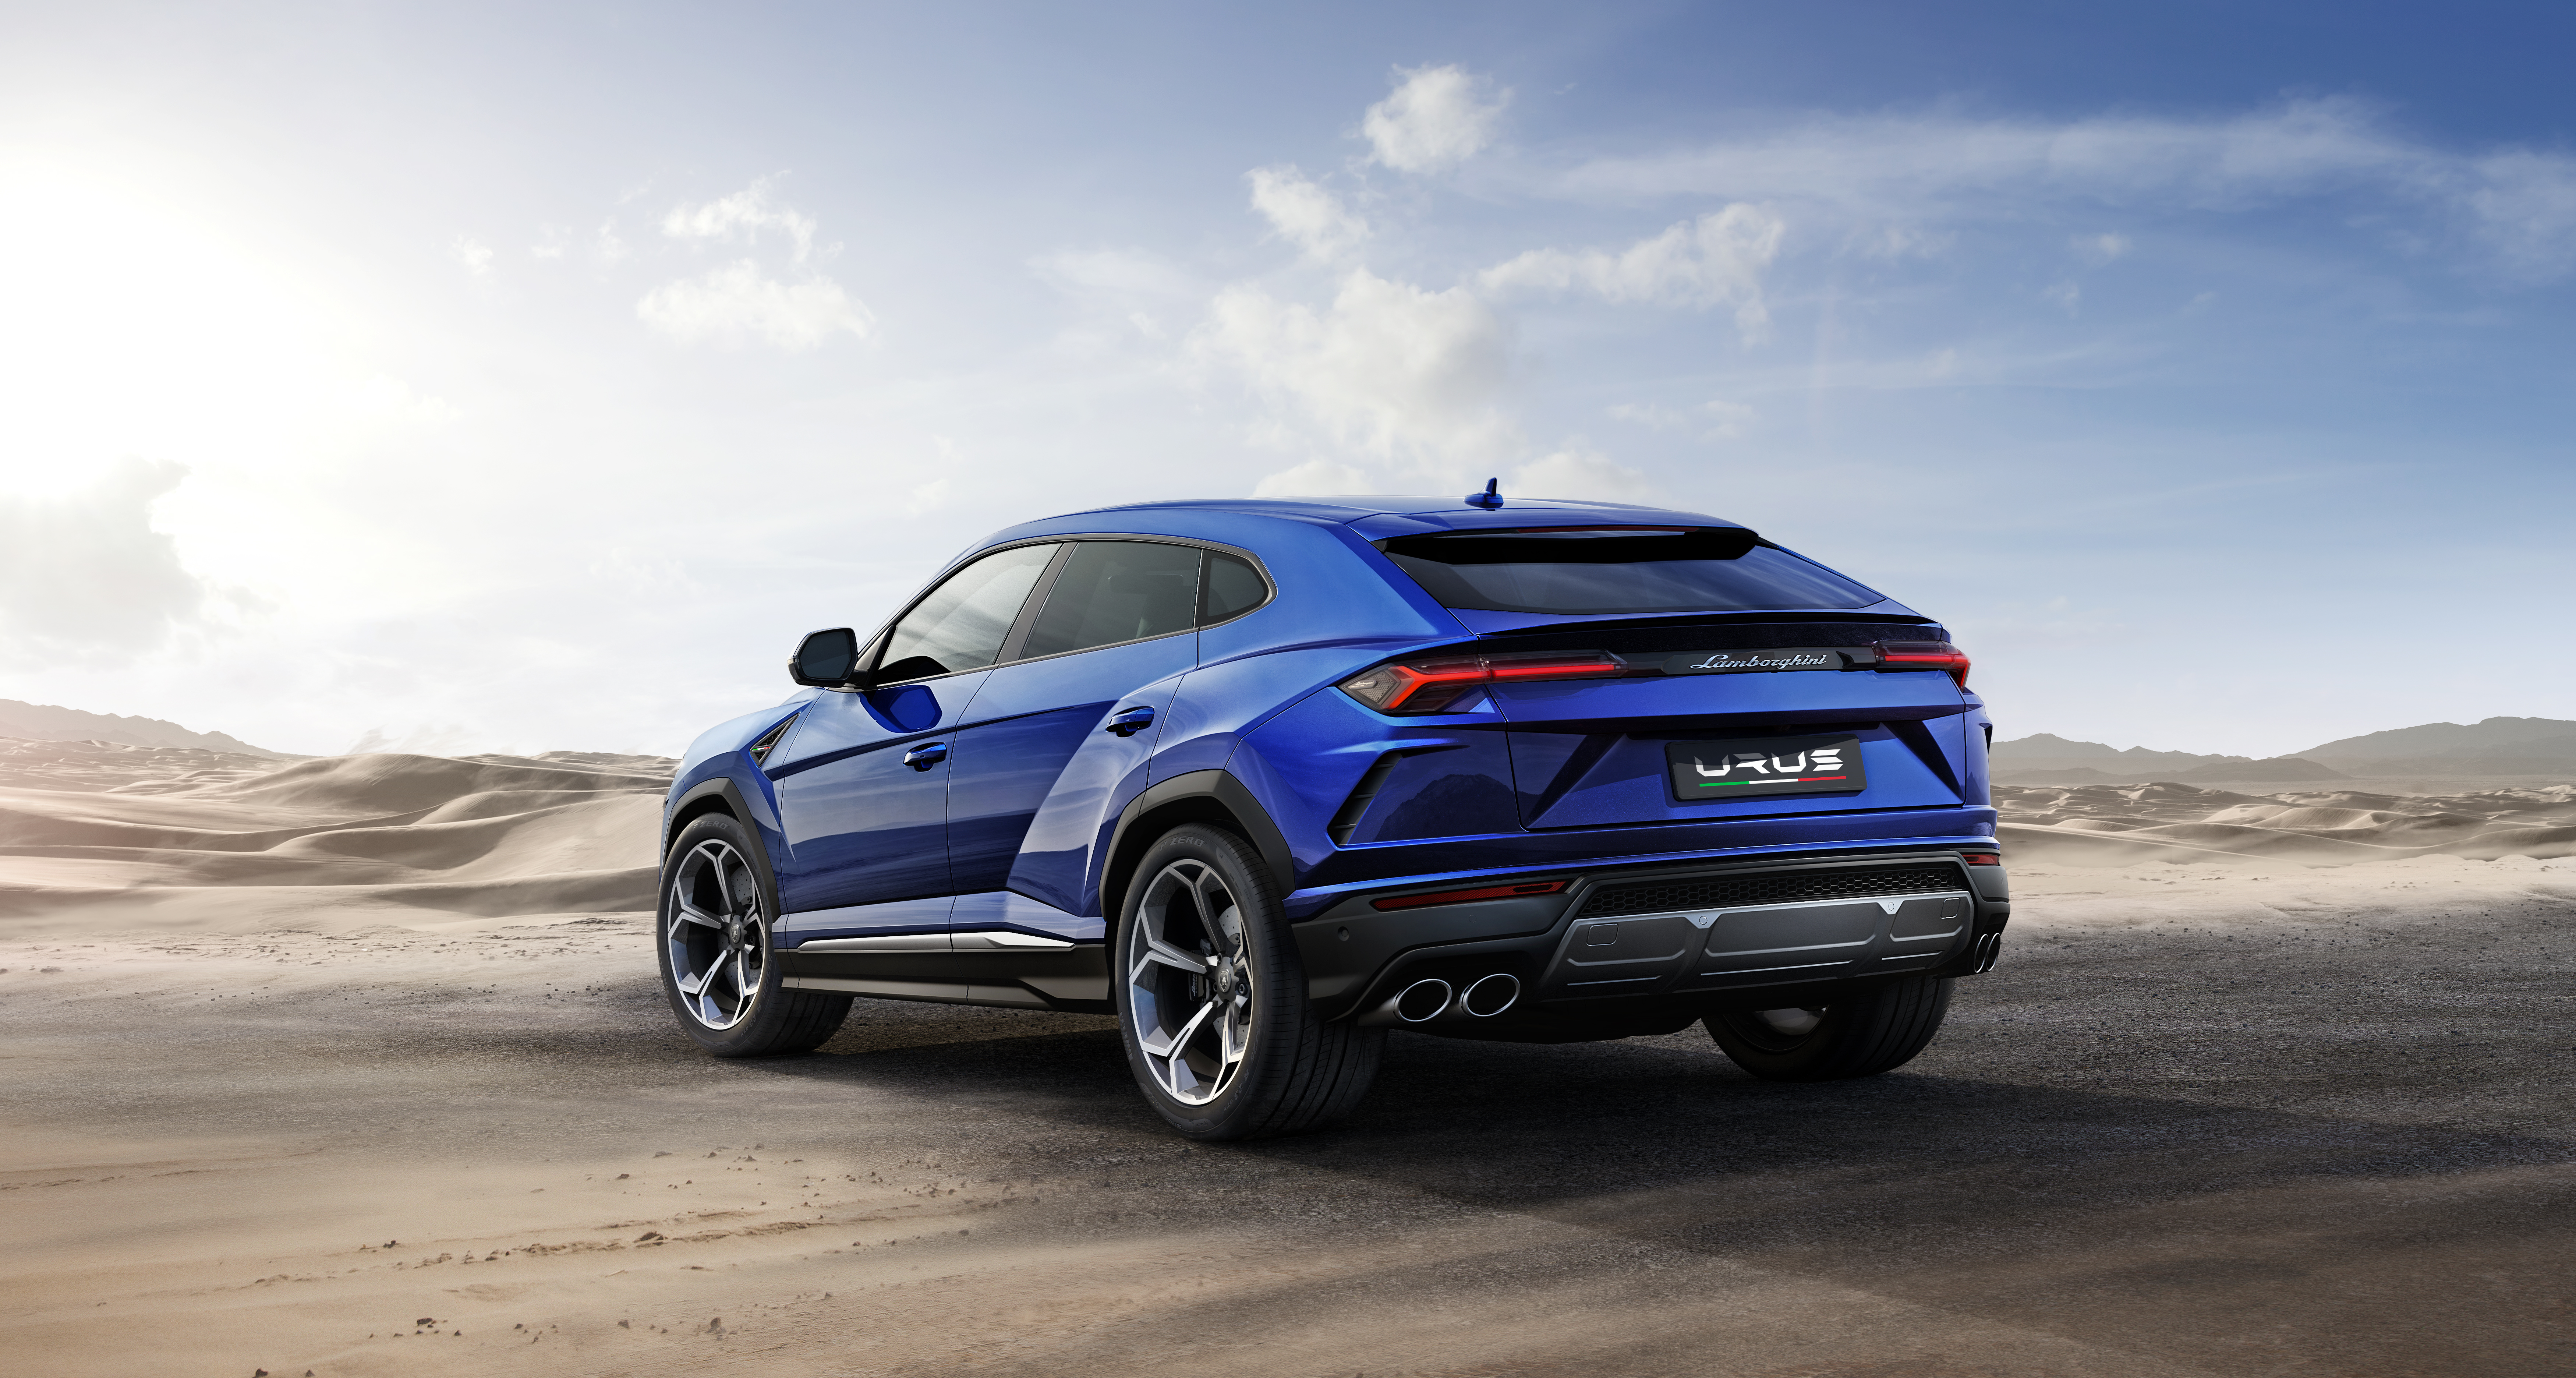 lamborghini urus officially launched in malaysia [ videos] piston myits global premiere was at lamborghini\u0027s headquarters in sant\u0027agata bolognese in december 2017 touted as the world\u0027s first super sport utility vehicle